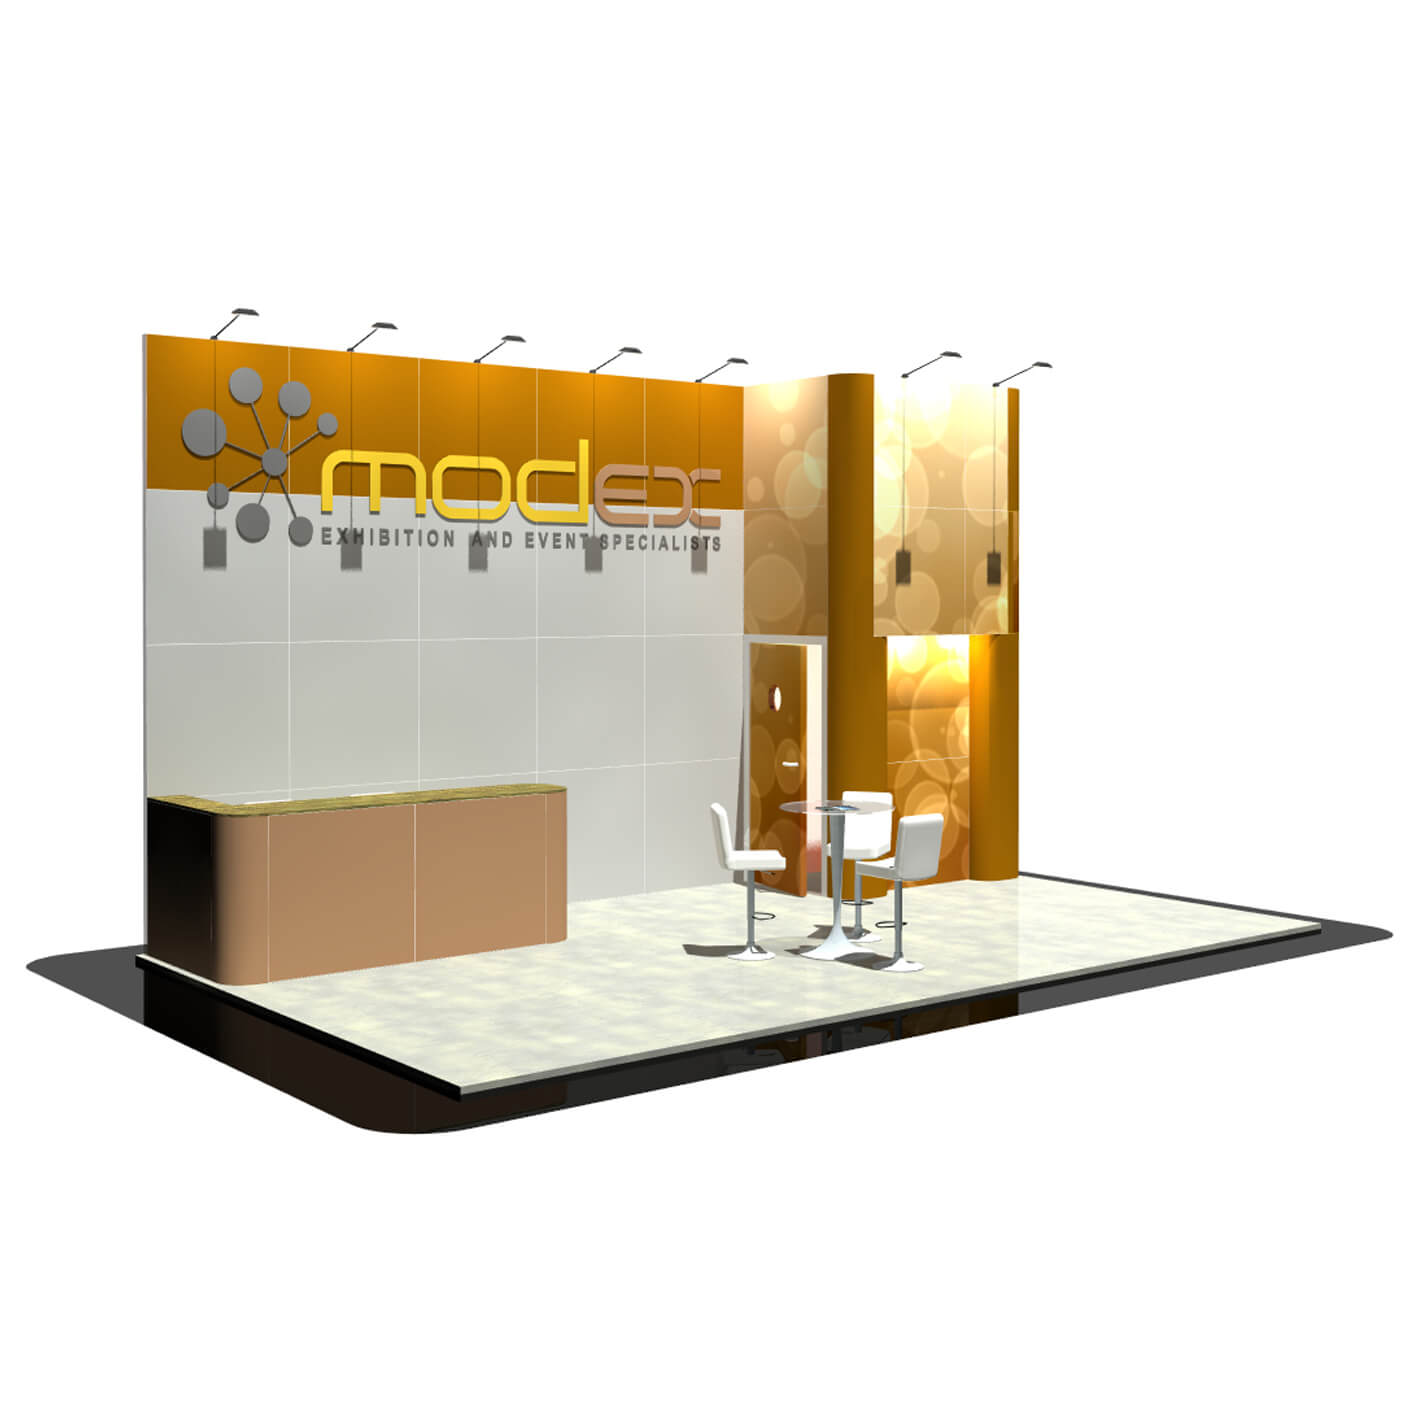 Exhibition Booth Floor Plan : Inspiration for exhibition stands modex uk